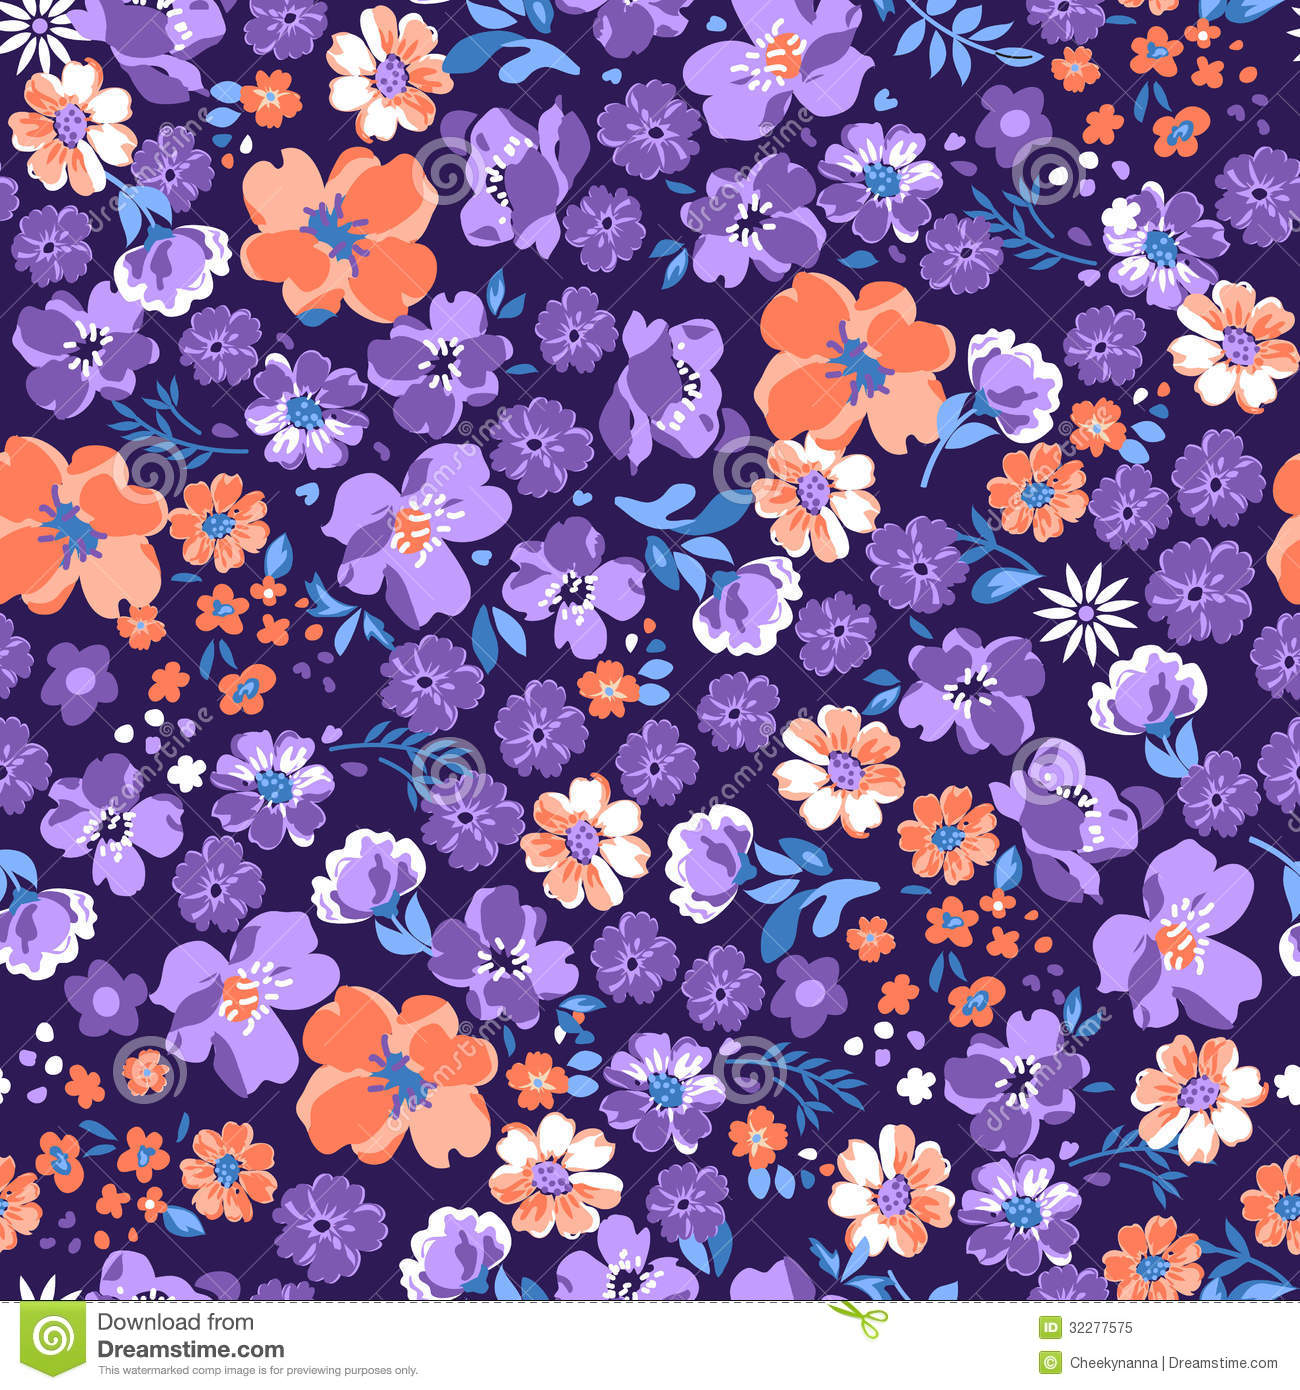 purple floral background illustration 32277575 megapixl